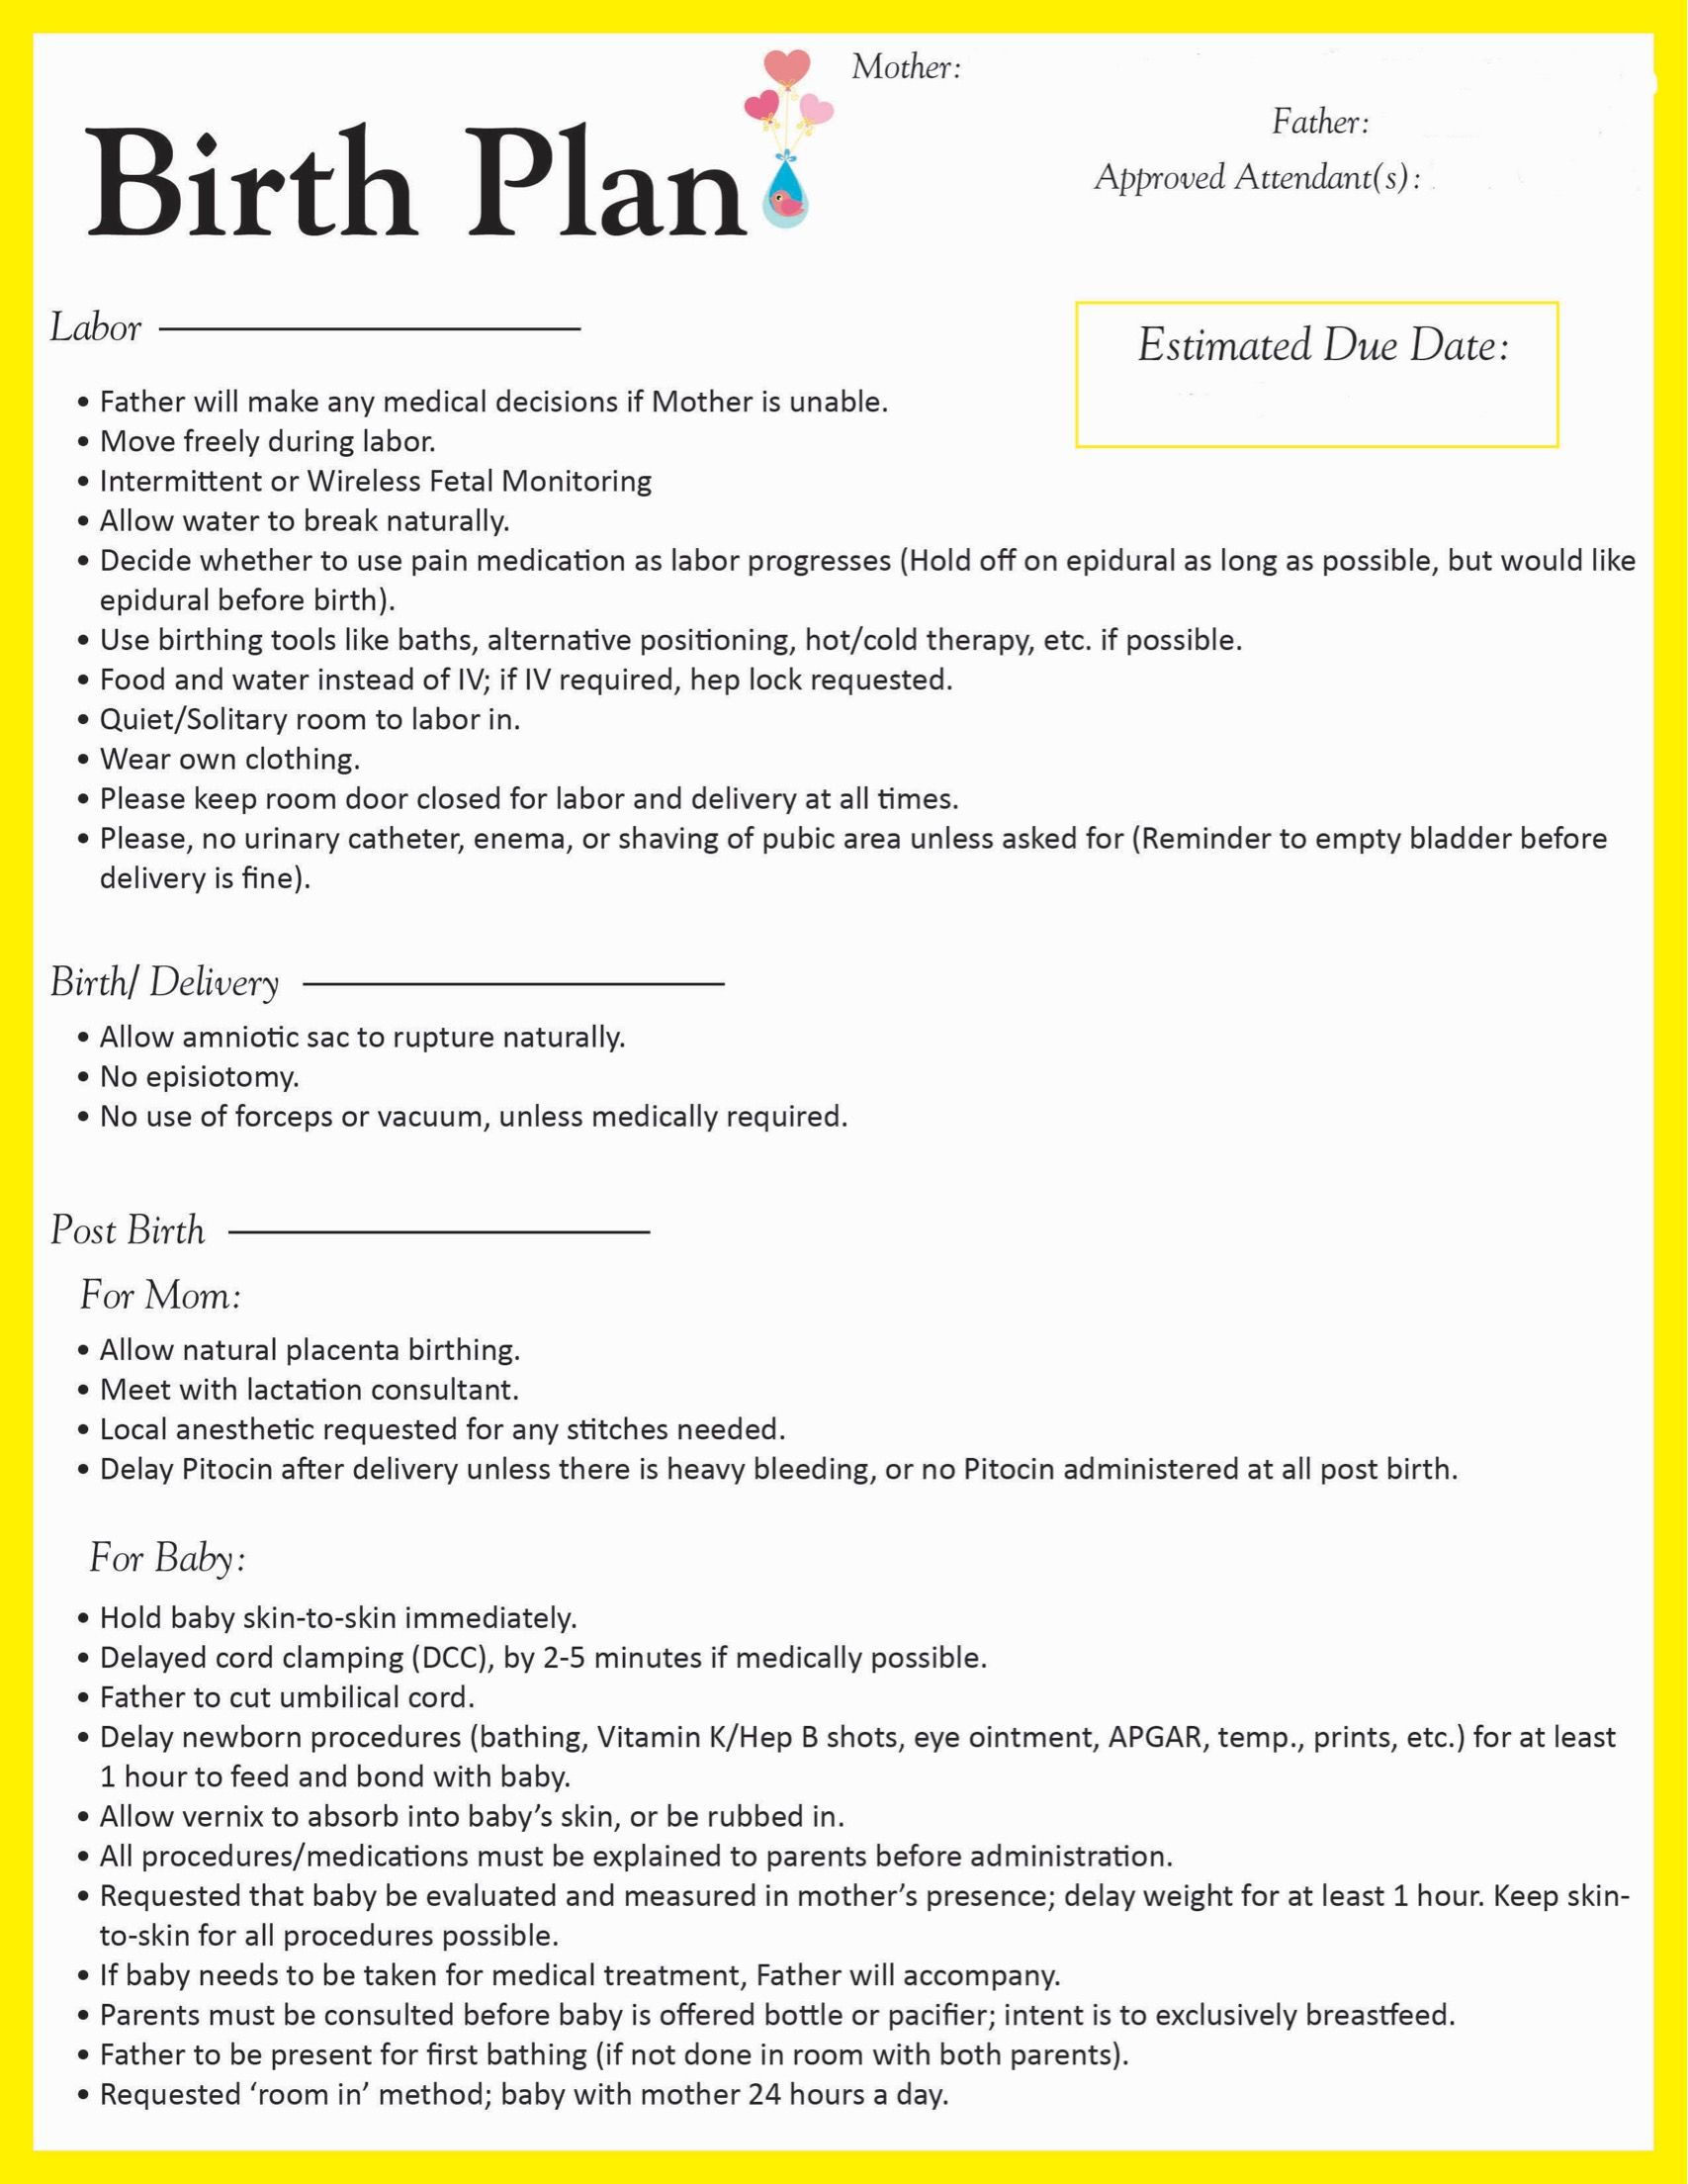 003 Fantastic One Page Birth Plan Template Sample  Simple PdfFull